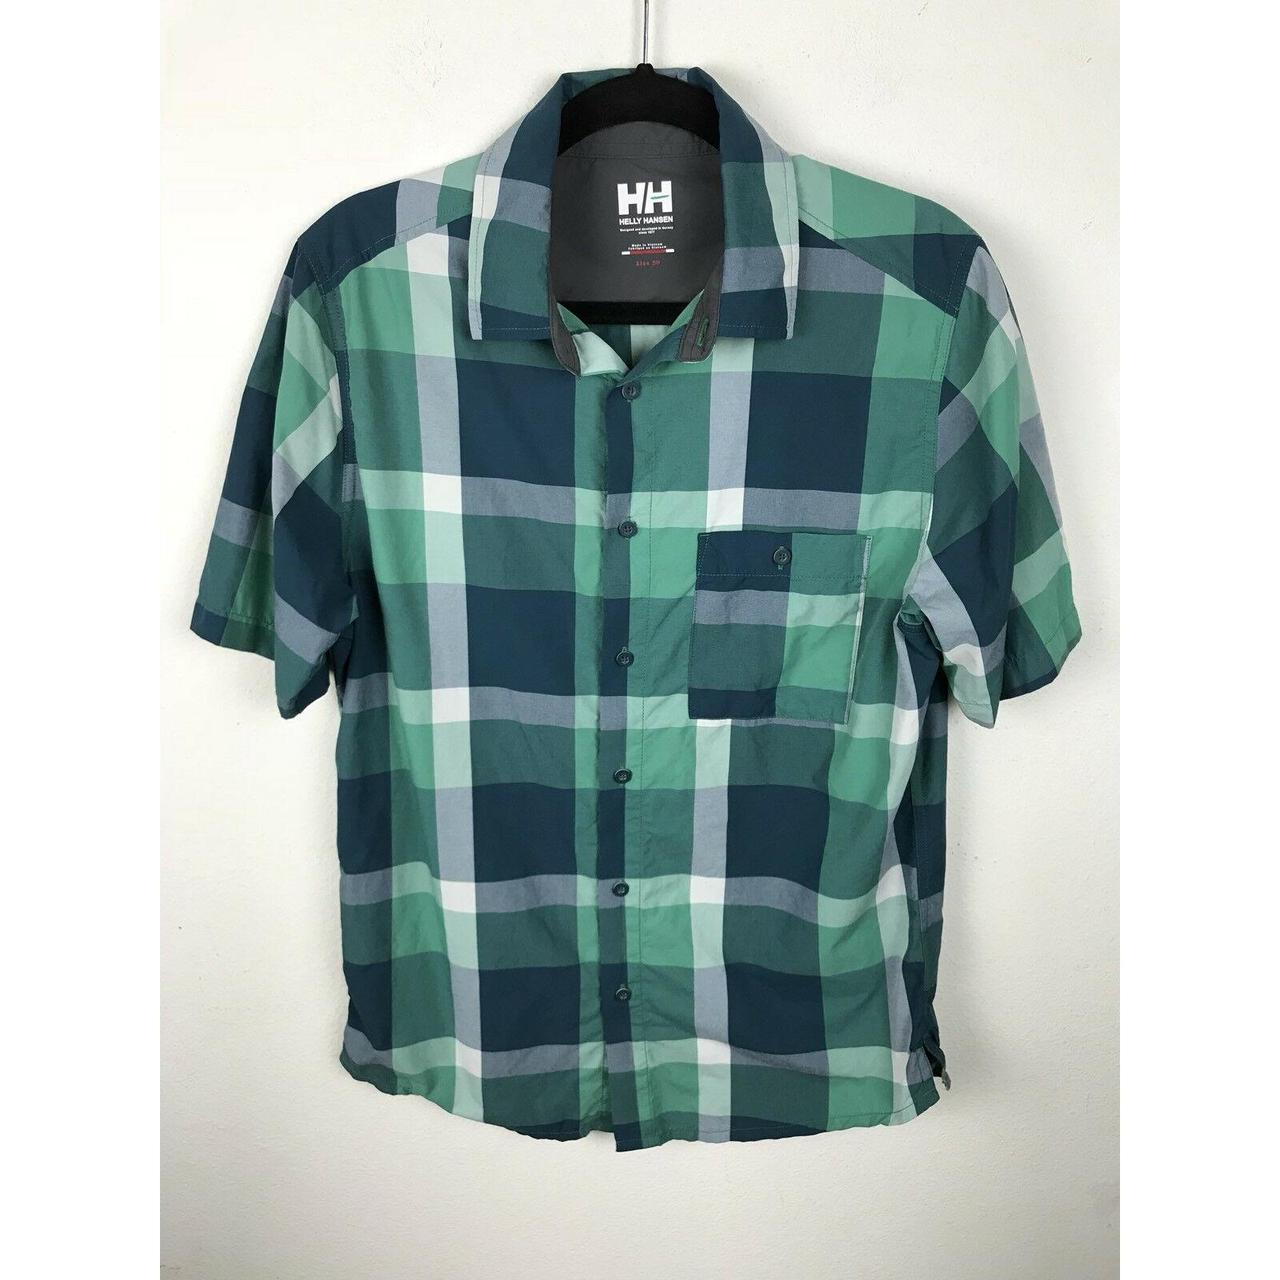 Product Image 1 - Helly Hansen Shirt Size S